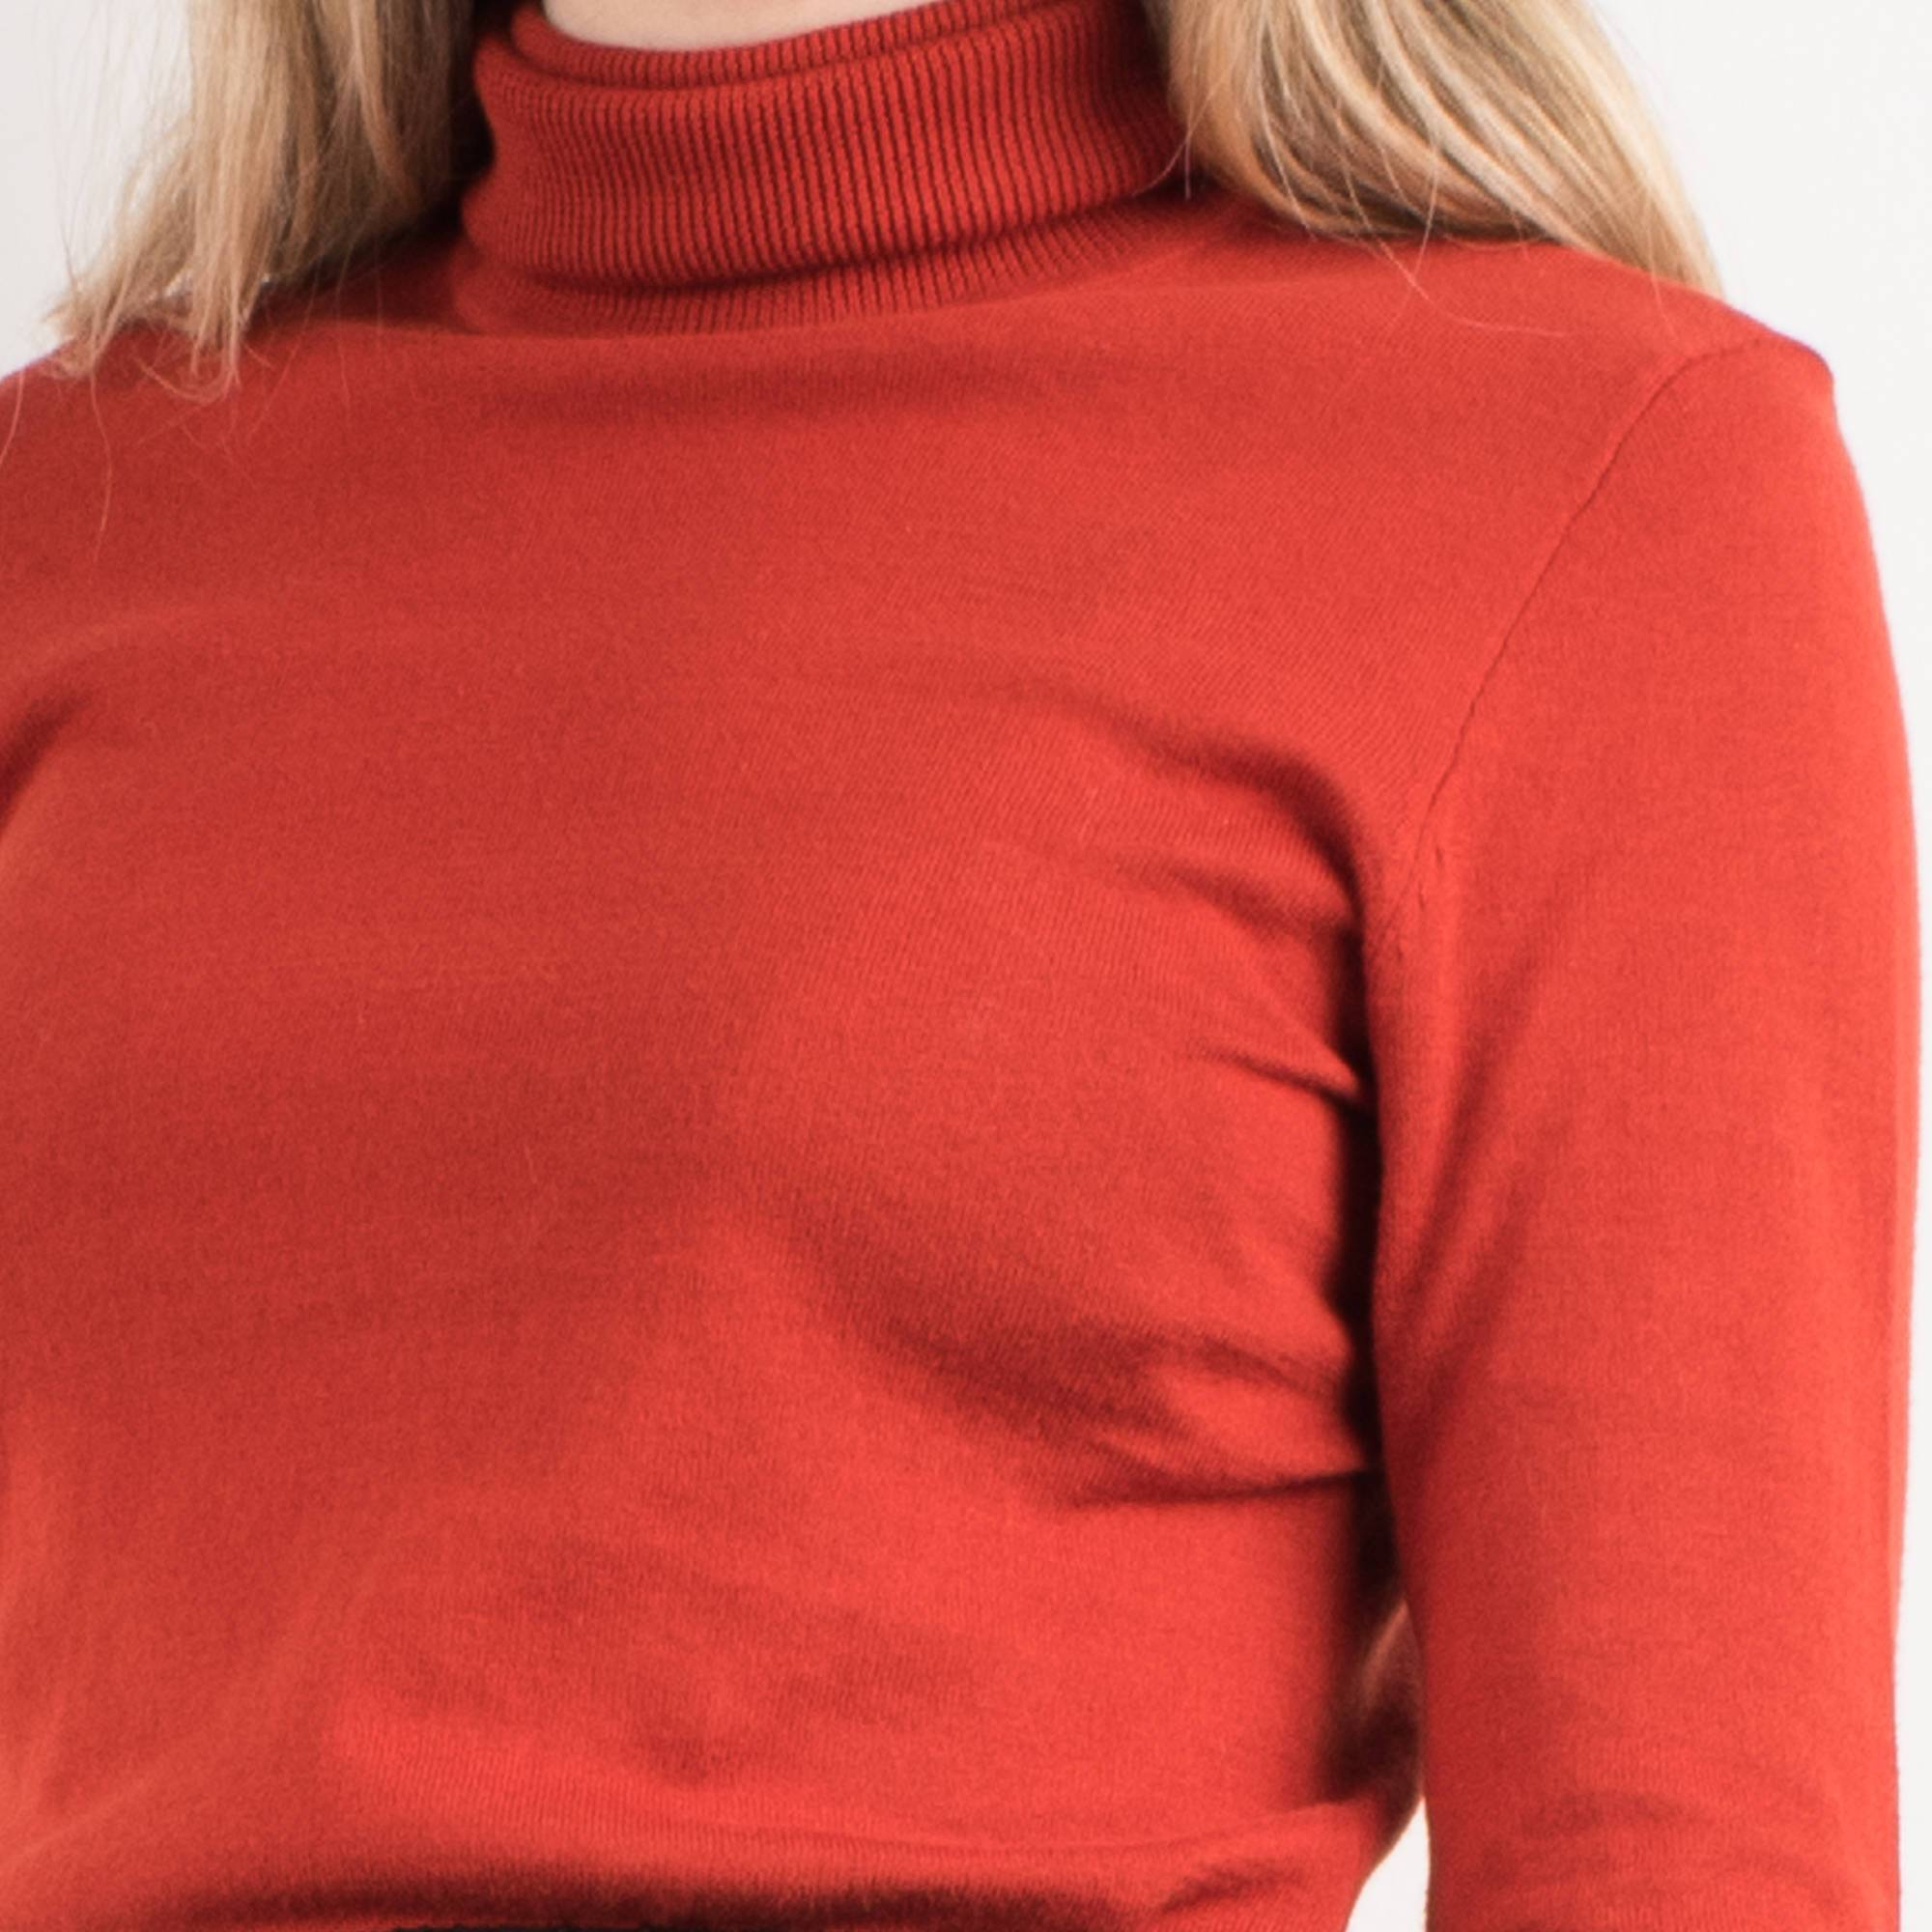 Vintage Rust Knit Turtleneck Sweater / S - Closed Caption